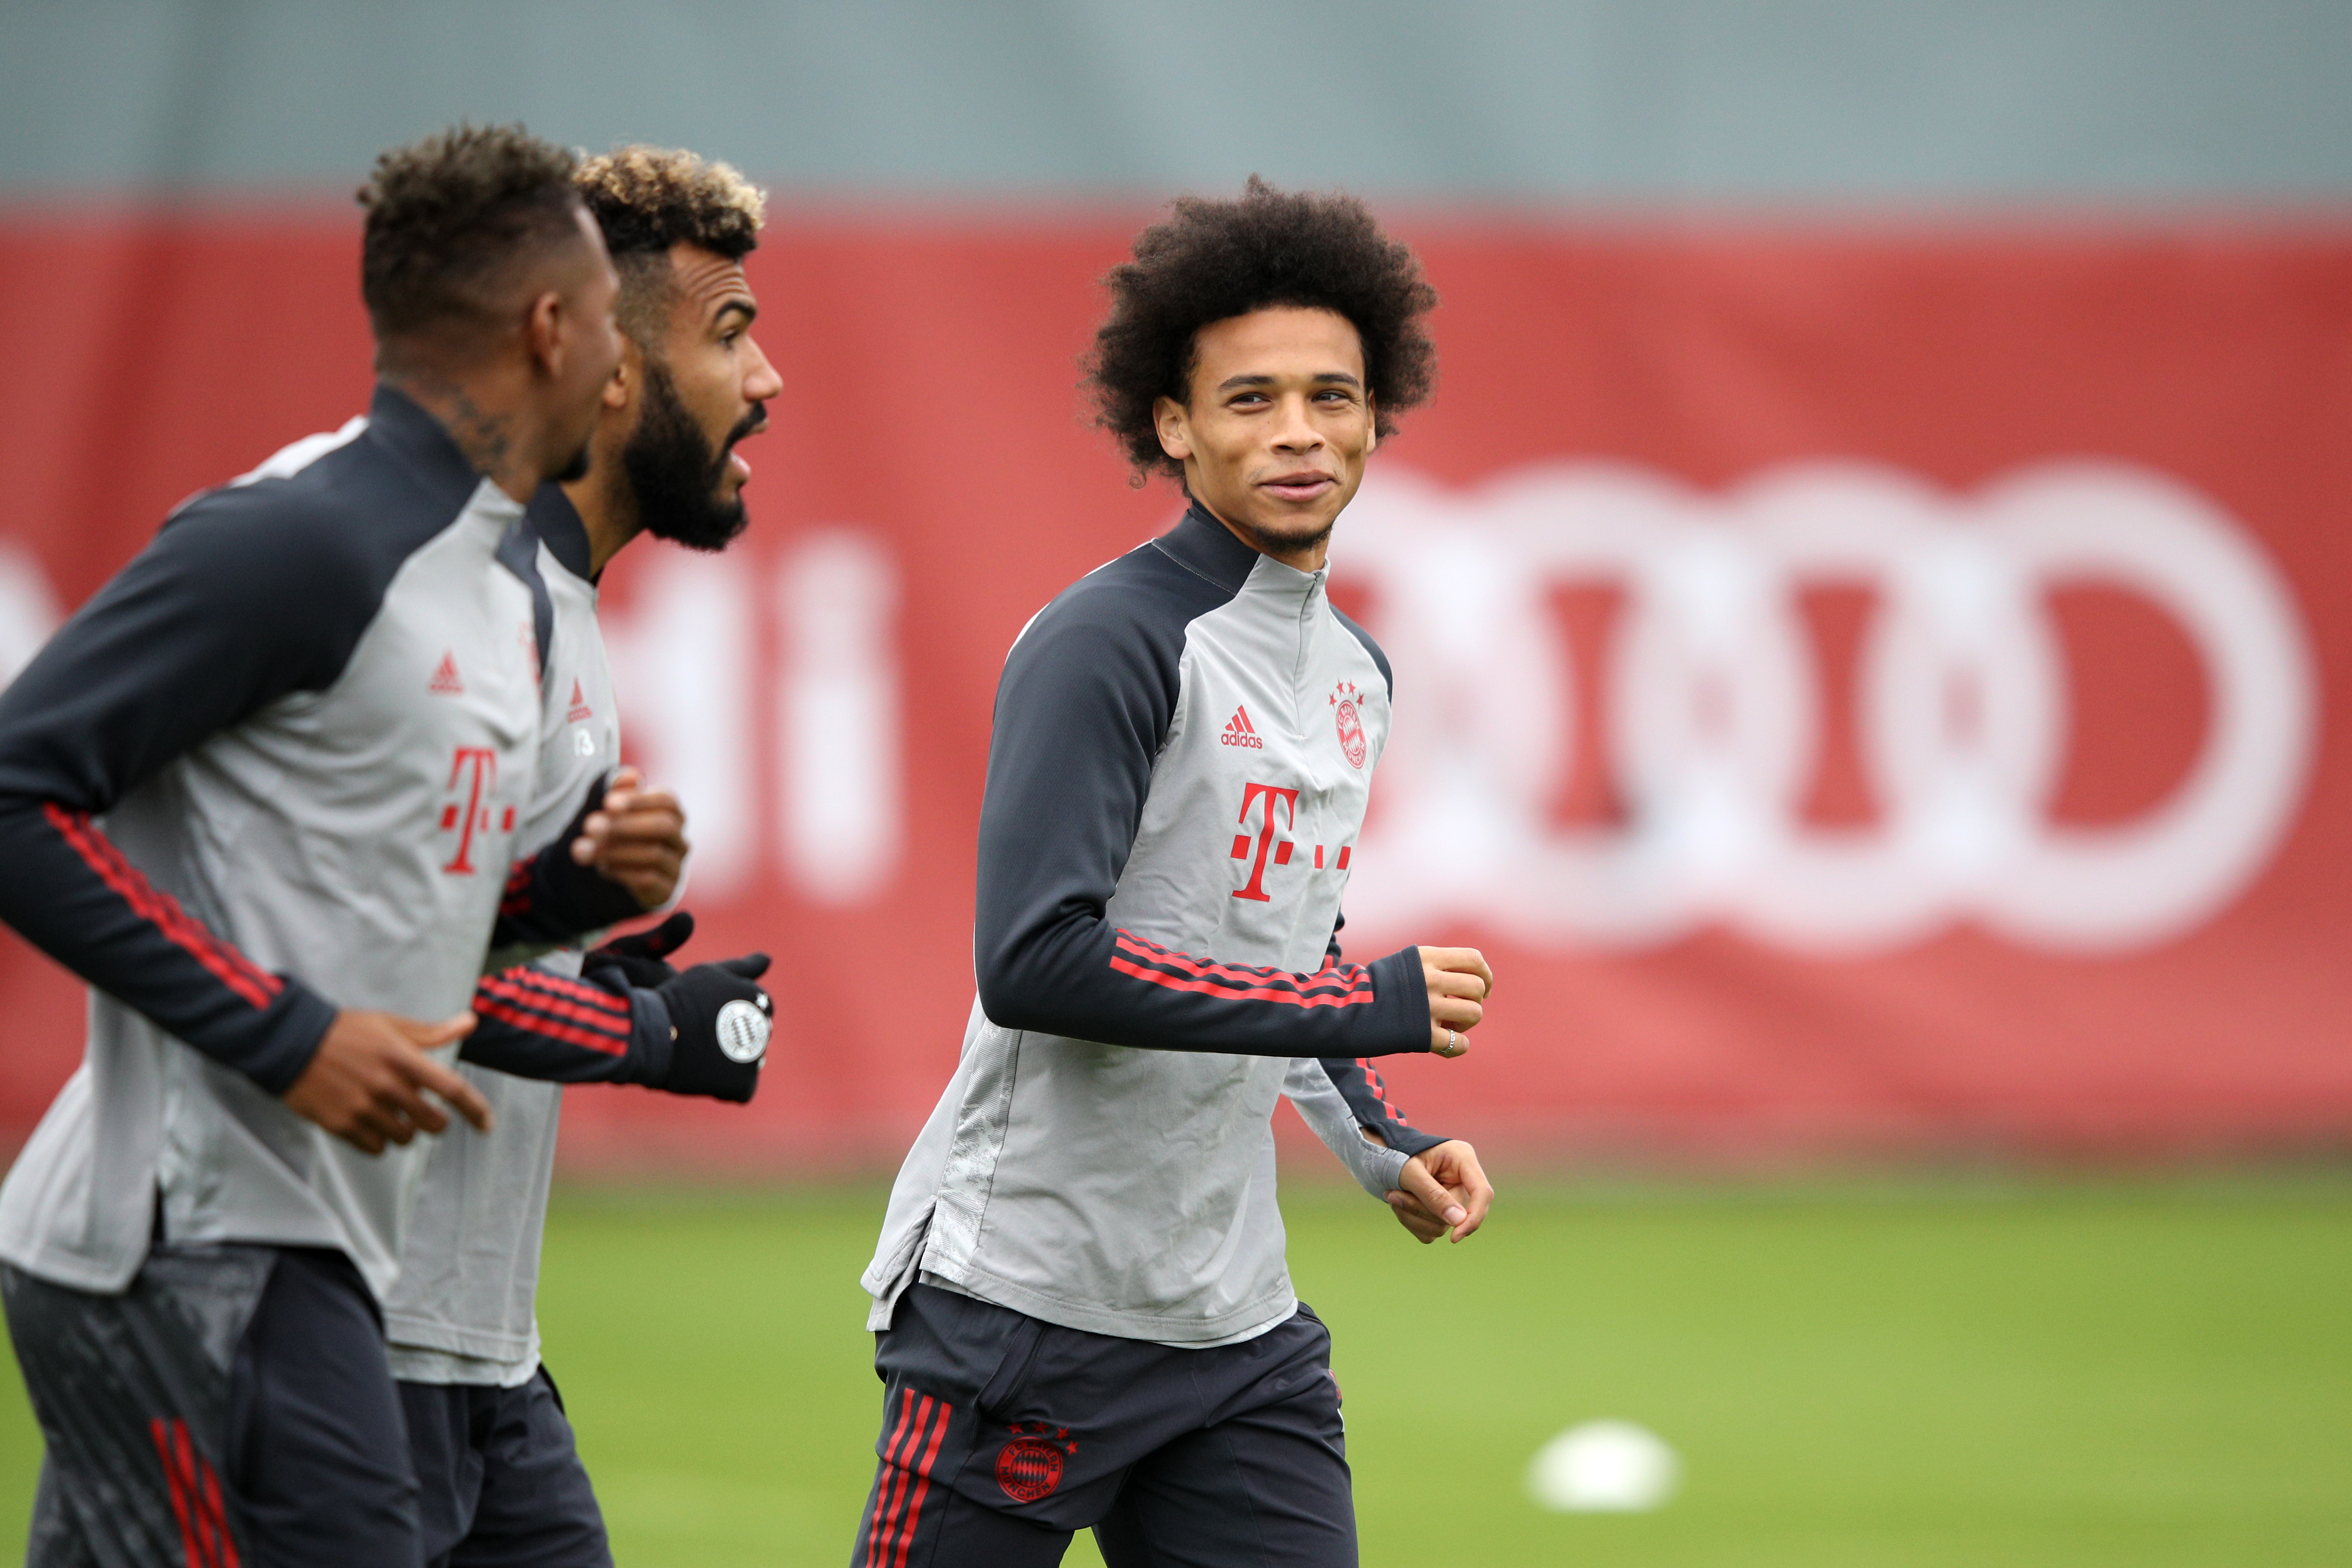 Three players who need to step for Bayern - Sane needs to step up.